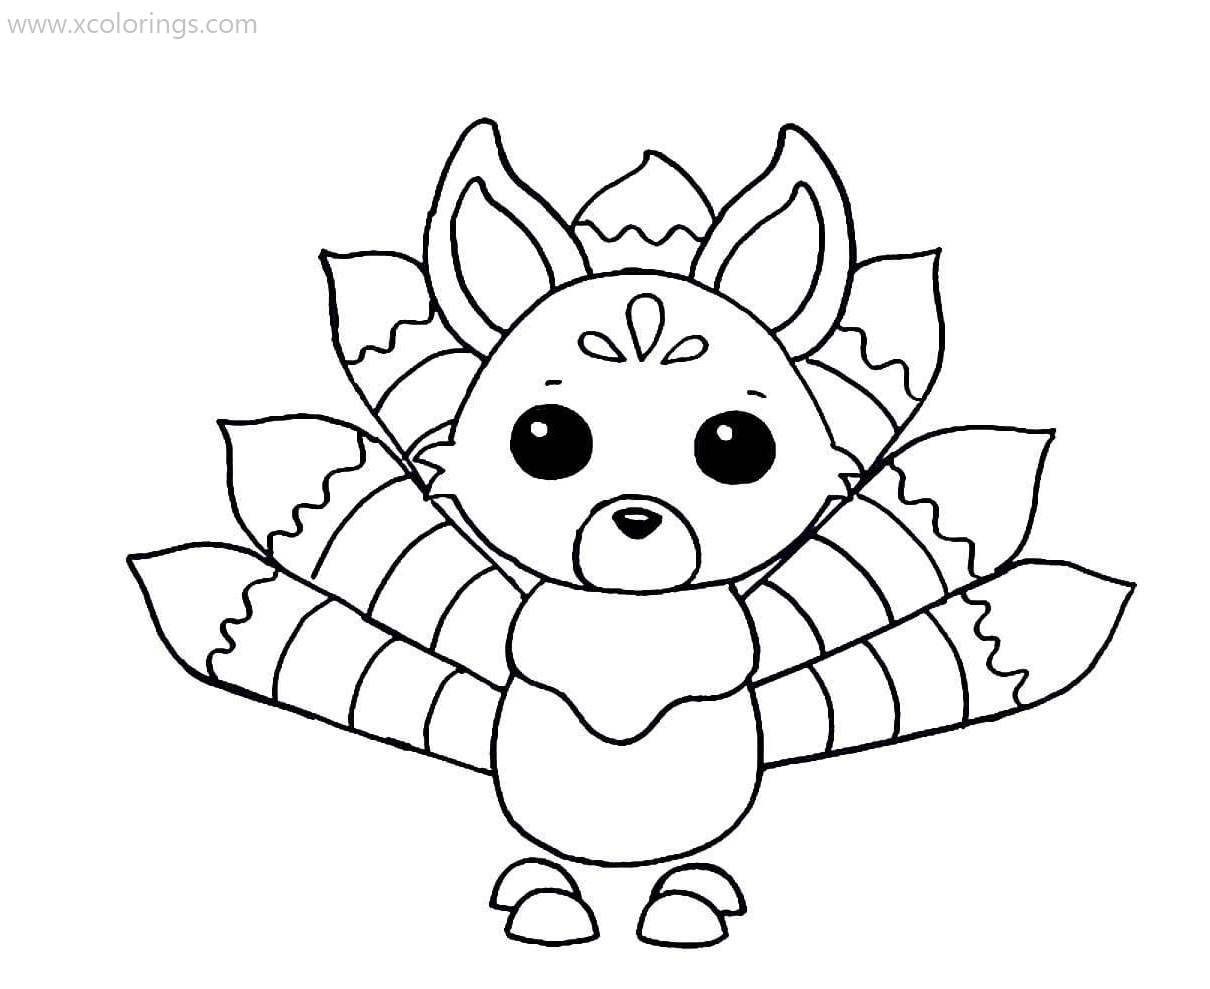 Roblox Adopt Me Coloring Pages Kitsune In 2020 Coloring Pages Detailed Coloring Pages Cool Coloring Pages